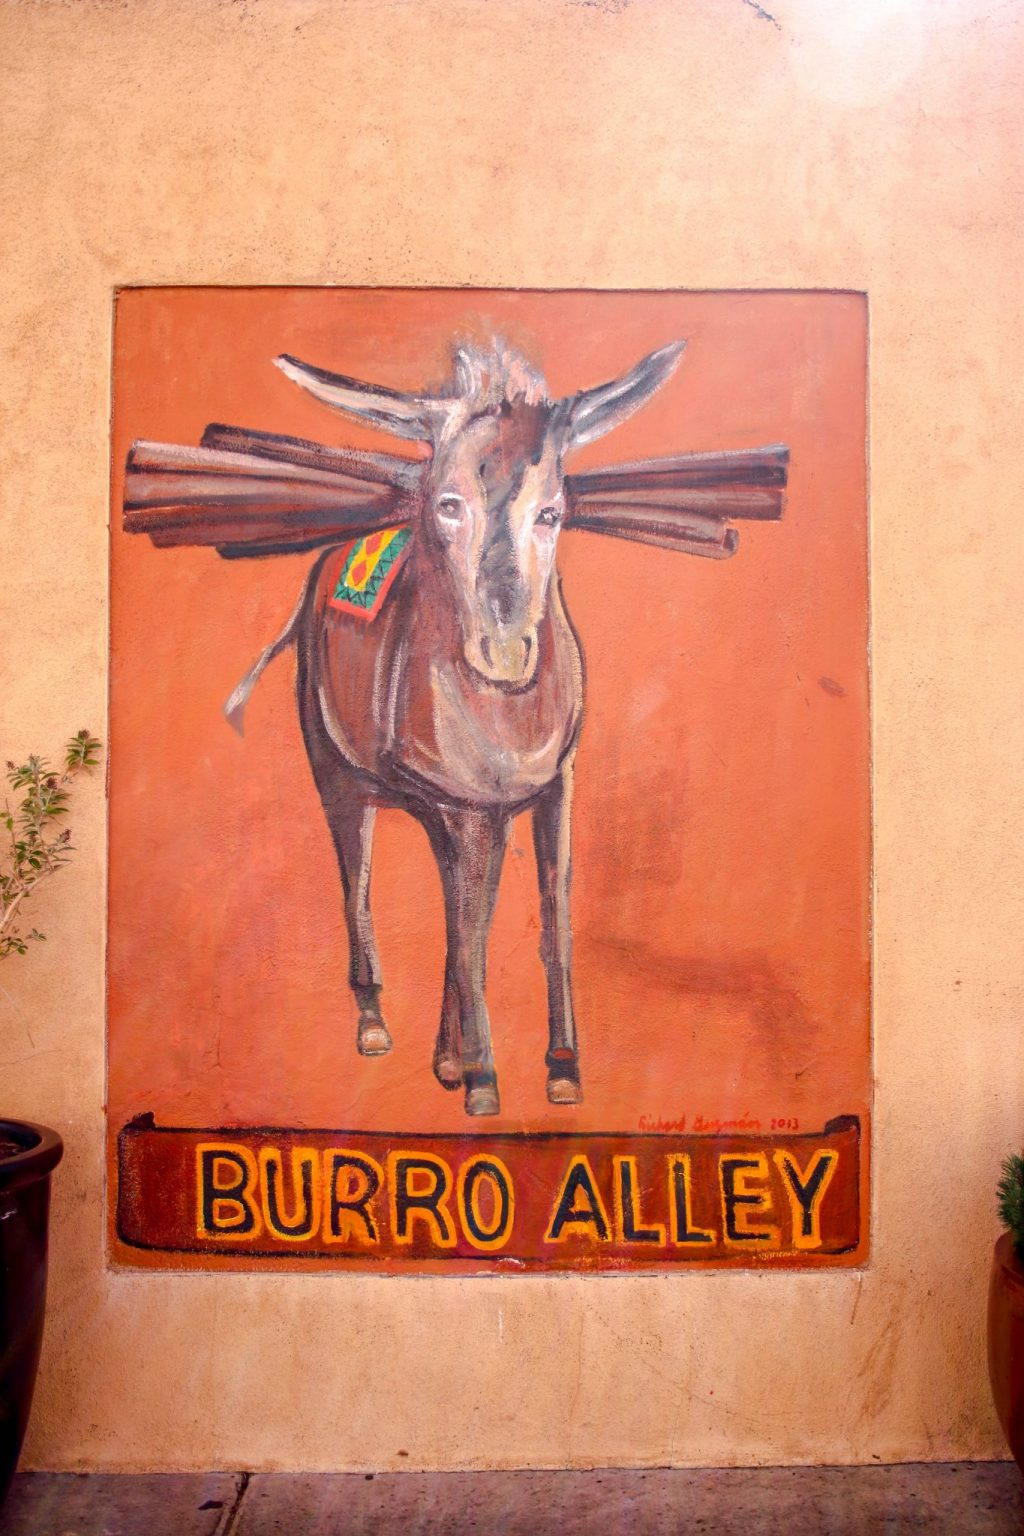 Burro Alley Santa Fe New Mexico